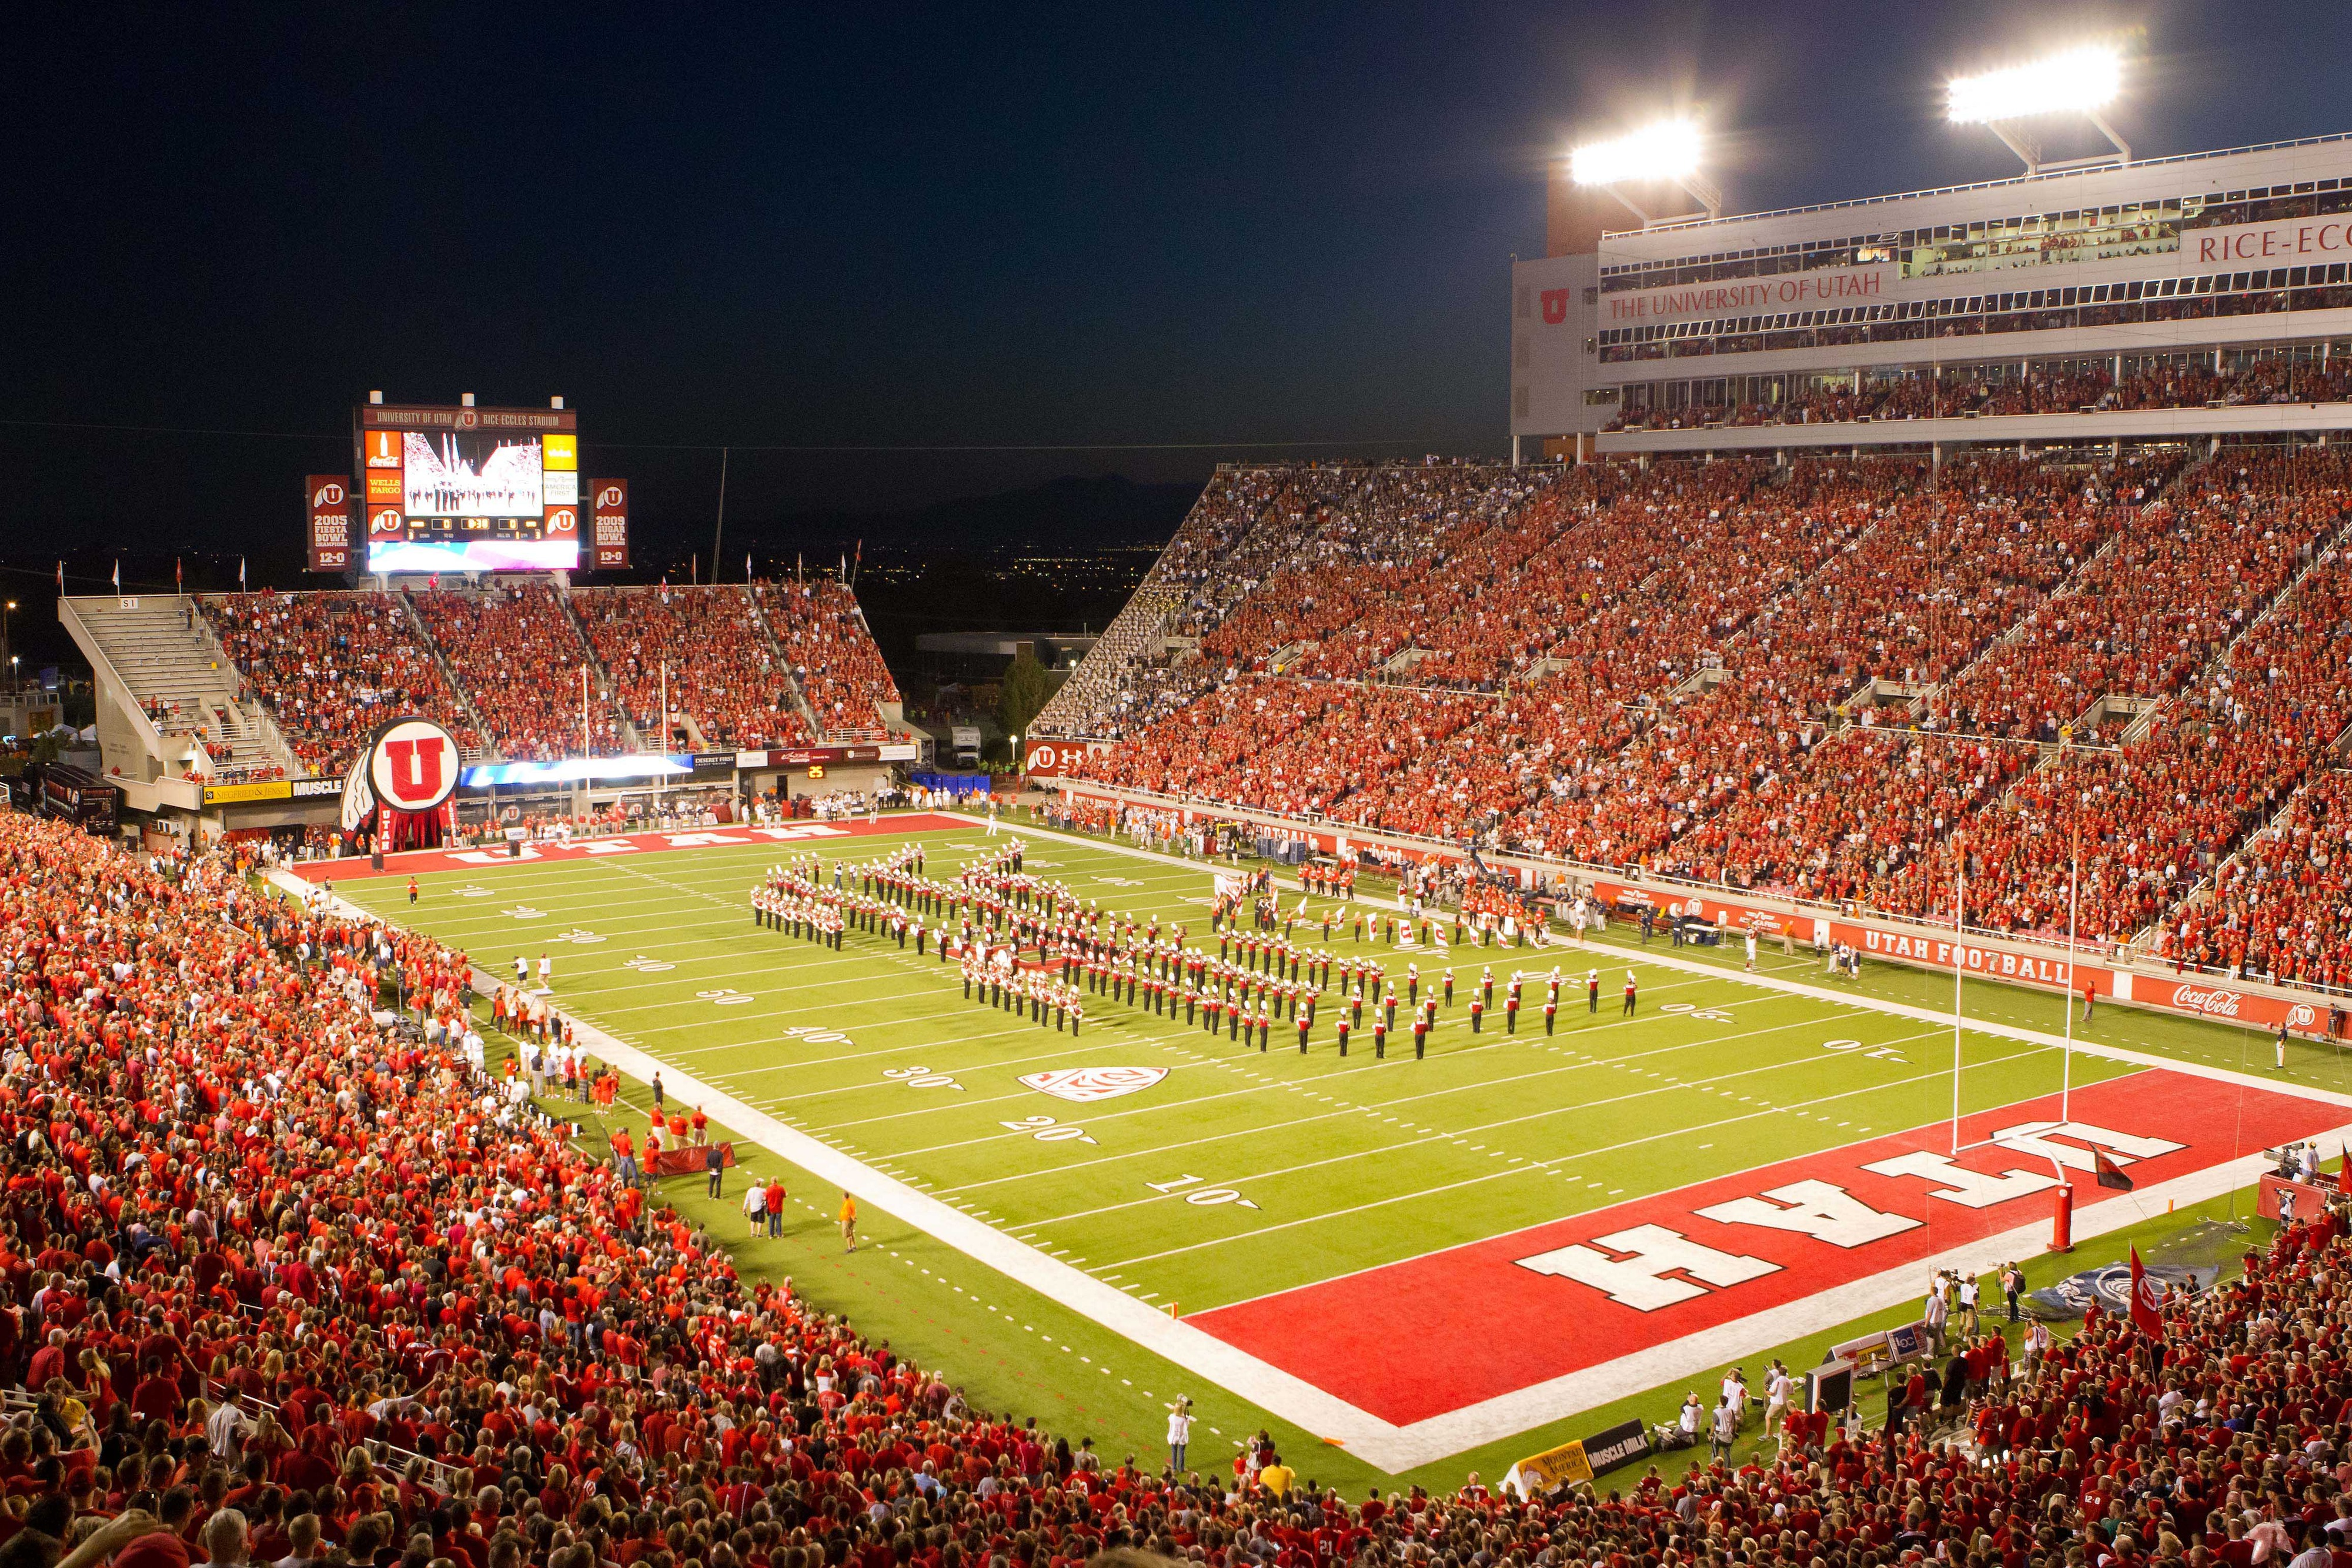 September 15, 2012; Salt Lake City, UT, USA; A general view prior to a game between the Utah Utes and the Brigham Young Cougars at Rice-Eccles Stadium. Mandatory Credit: Russ Isabella-US PRESSWIRE